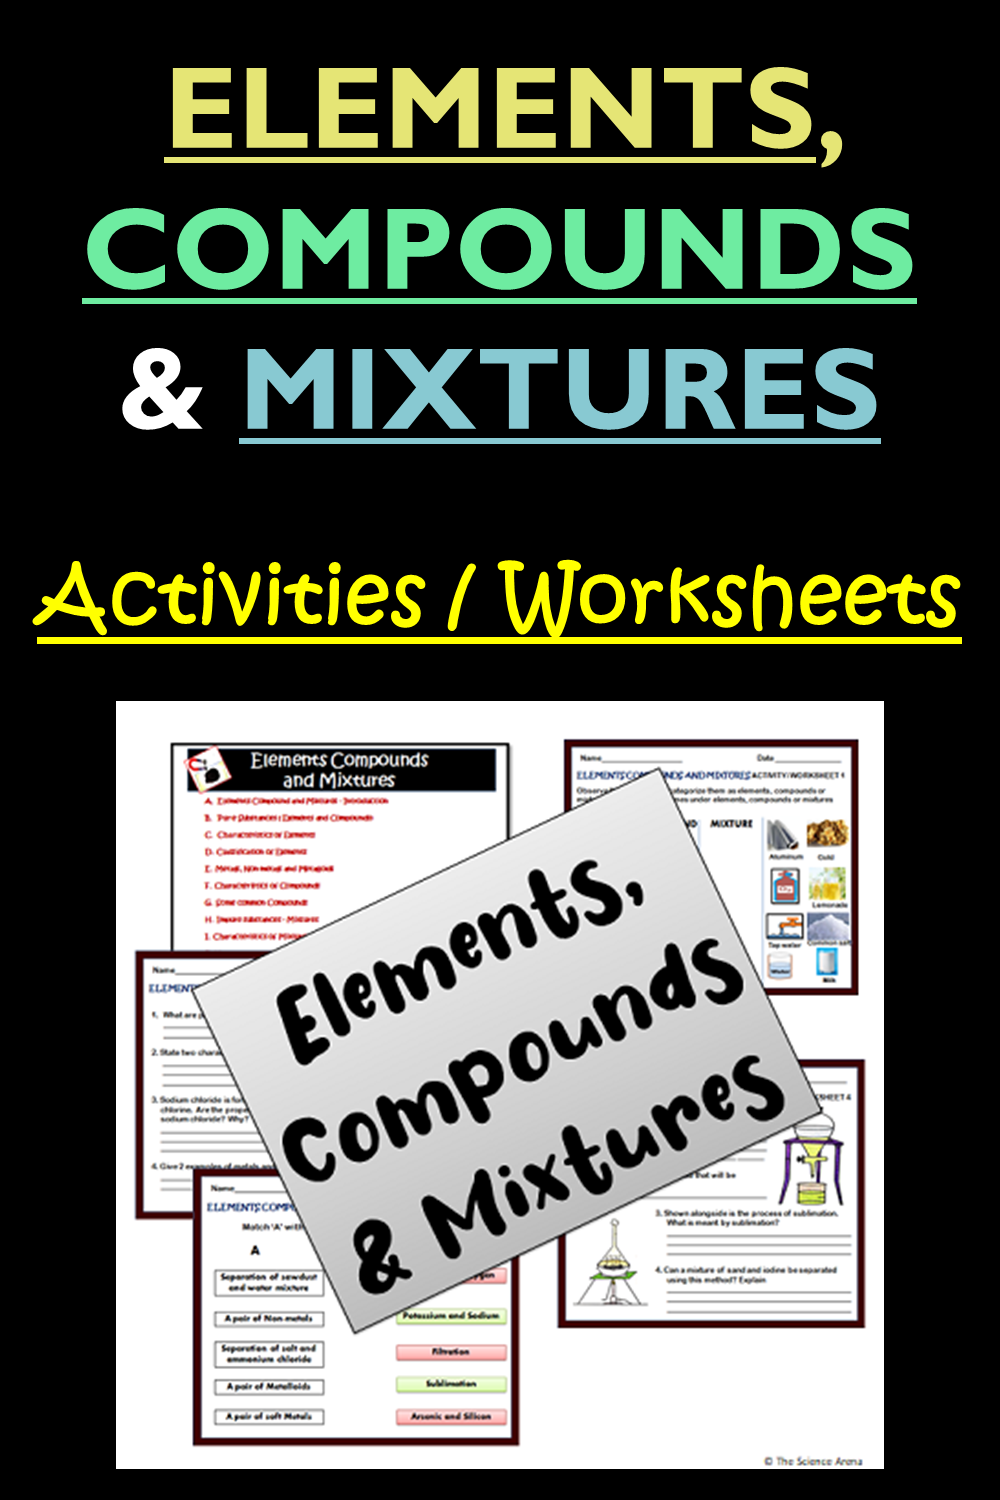 Activities And Worksheets For Elements Compounds And Mixtures Compounds And Mixtures Science Resources Elements Compounds And Mixtures [ 1500 x 1000 Pixel ]